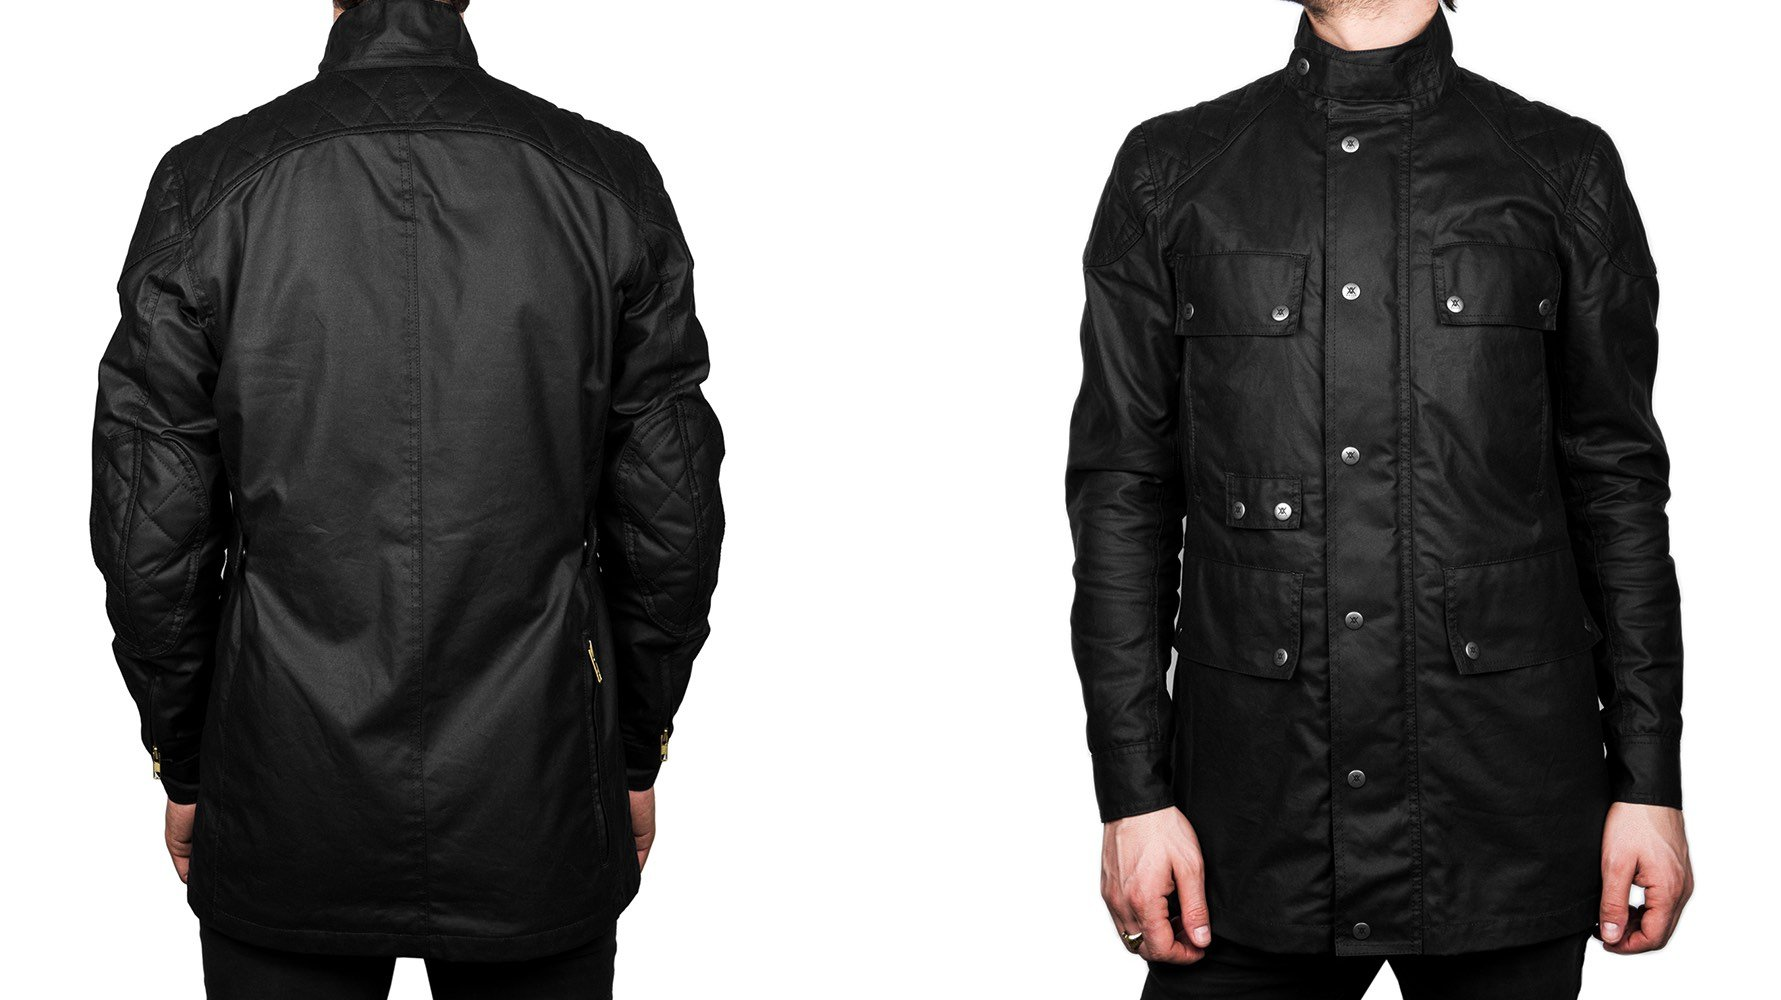 Malle_Expedition_Jacket_Details_Black0